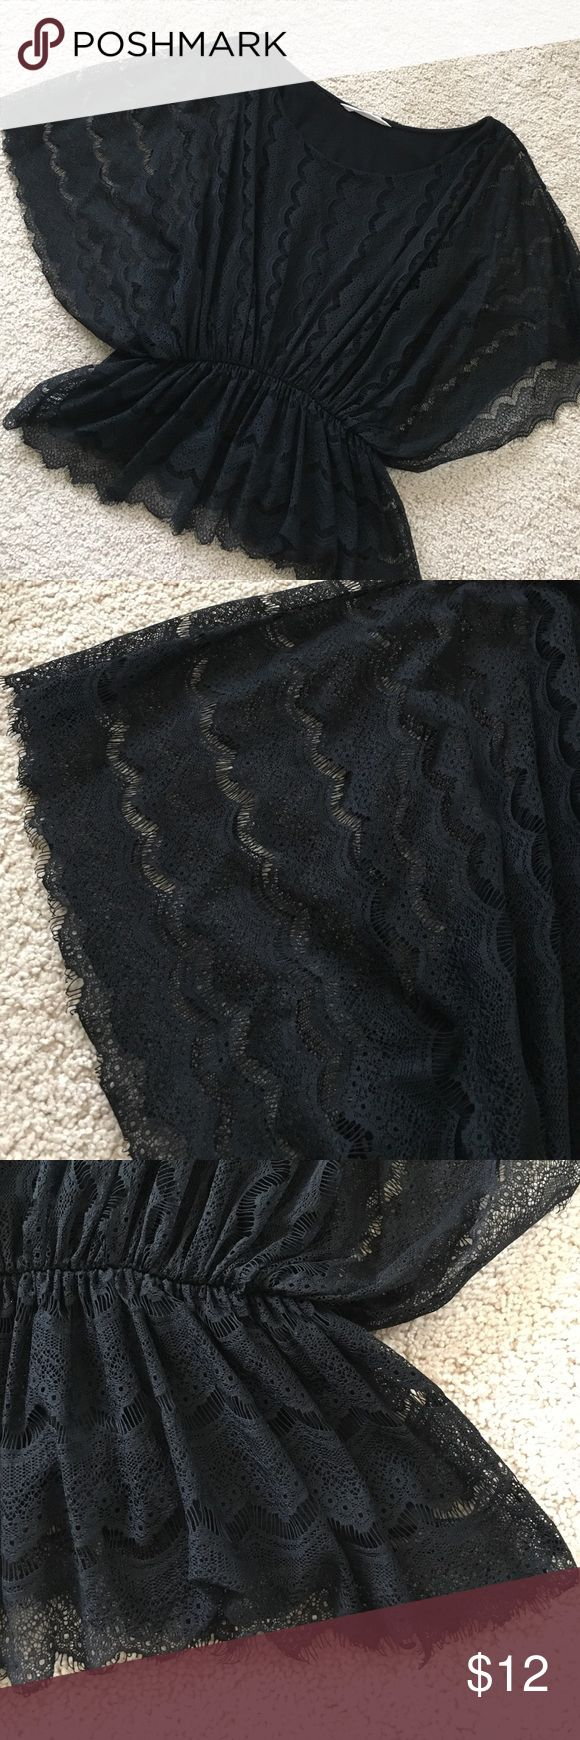 Black Lace Batwing Blouse Lovely condition black lace Blouse. Batwing sleeve and elastic waist with peplum flair. Lined. Old Navy Tops Blouses